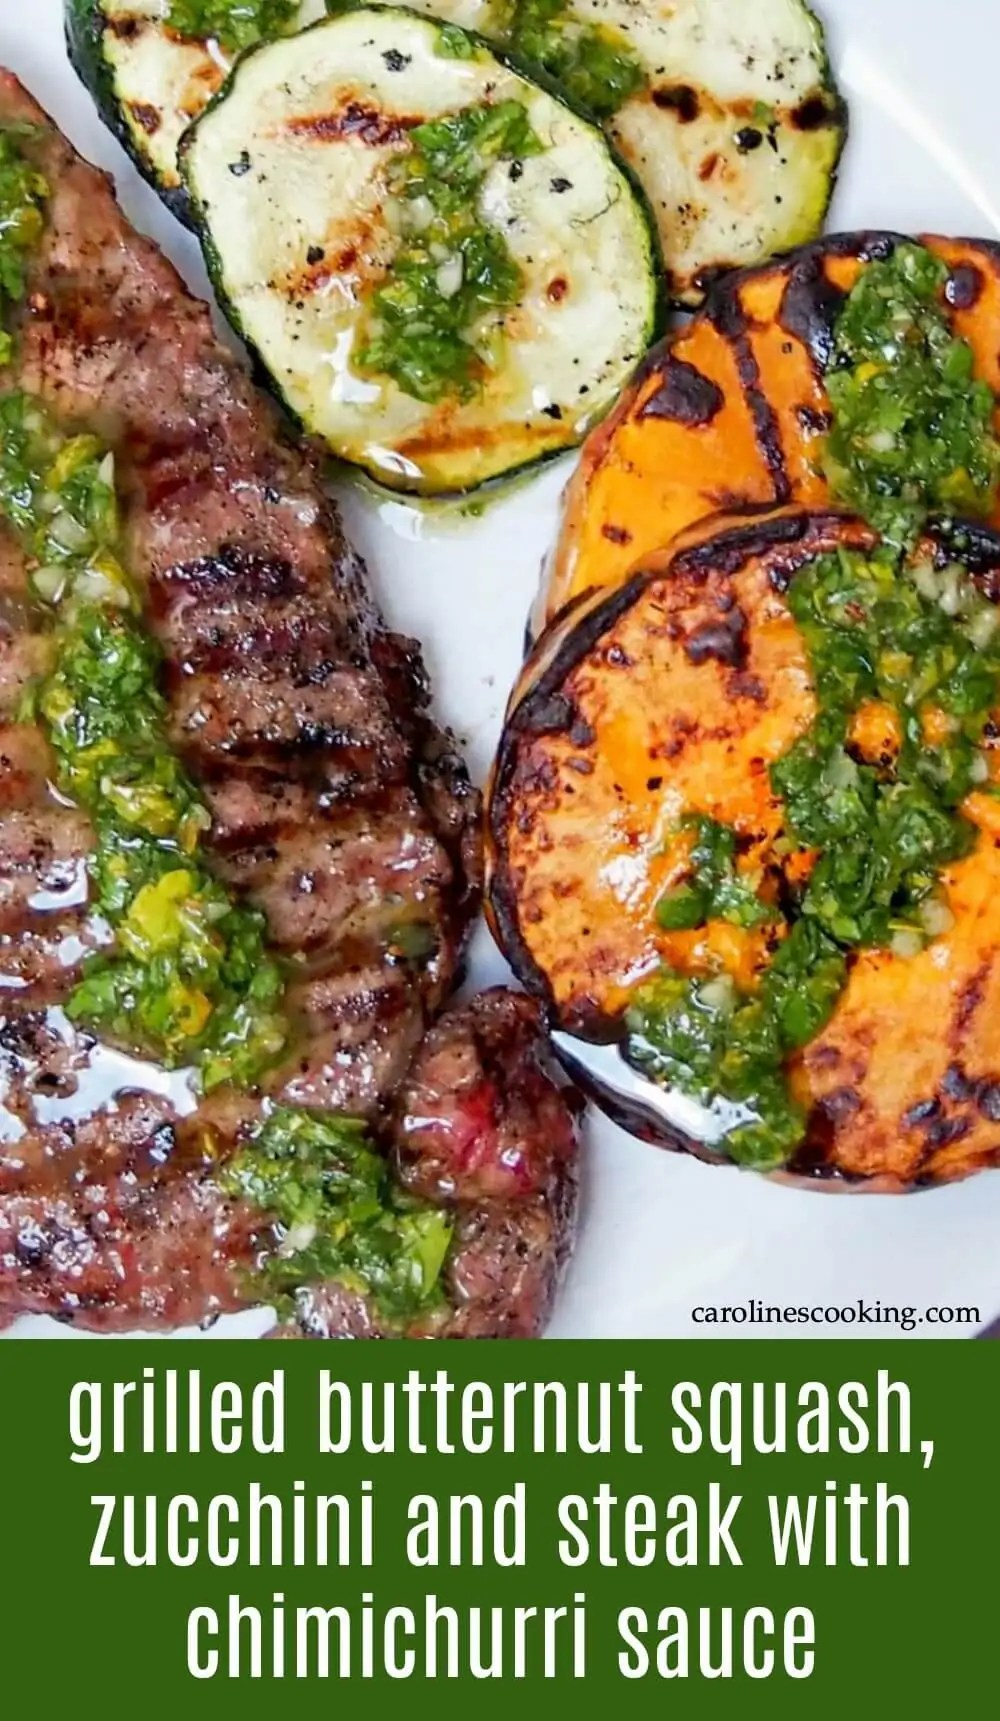 A simple chimichurri sauce transforms already tasty grilled butternut squash, zucchini and steak into a truly delicious but quick and easy meal. #chimichurri #grill #steak #squash